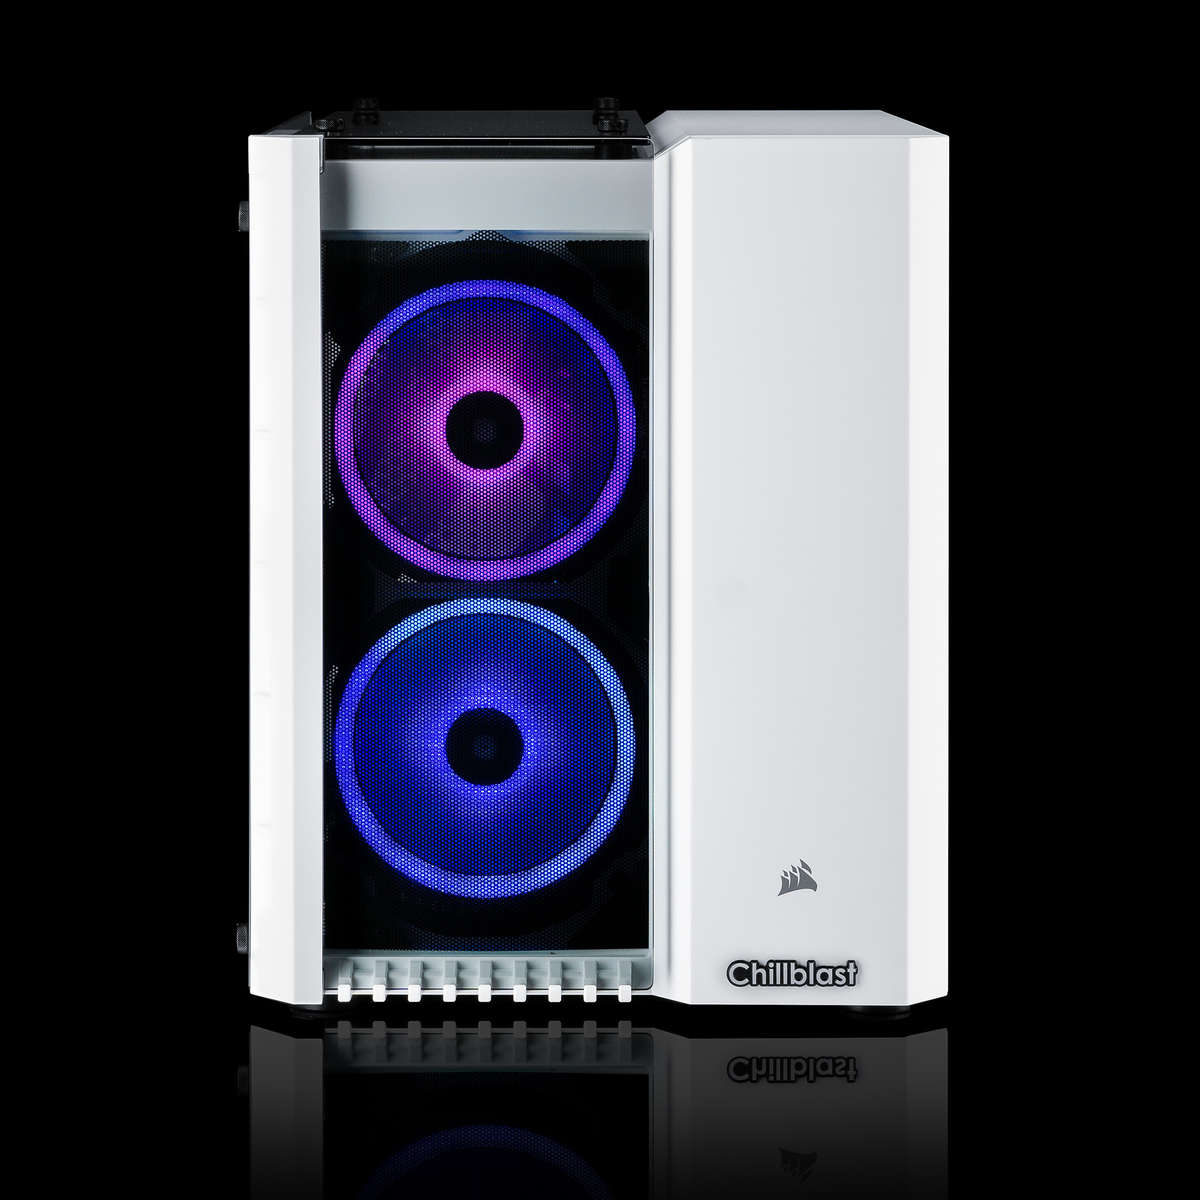 Chillblast Fusion Crystal Lite GTX 1660 Gaming PC